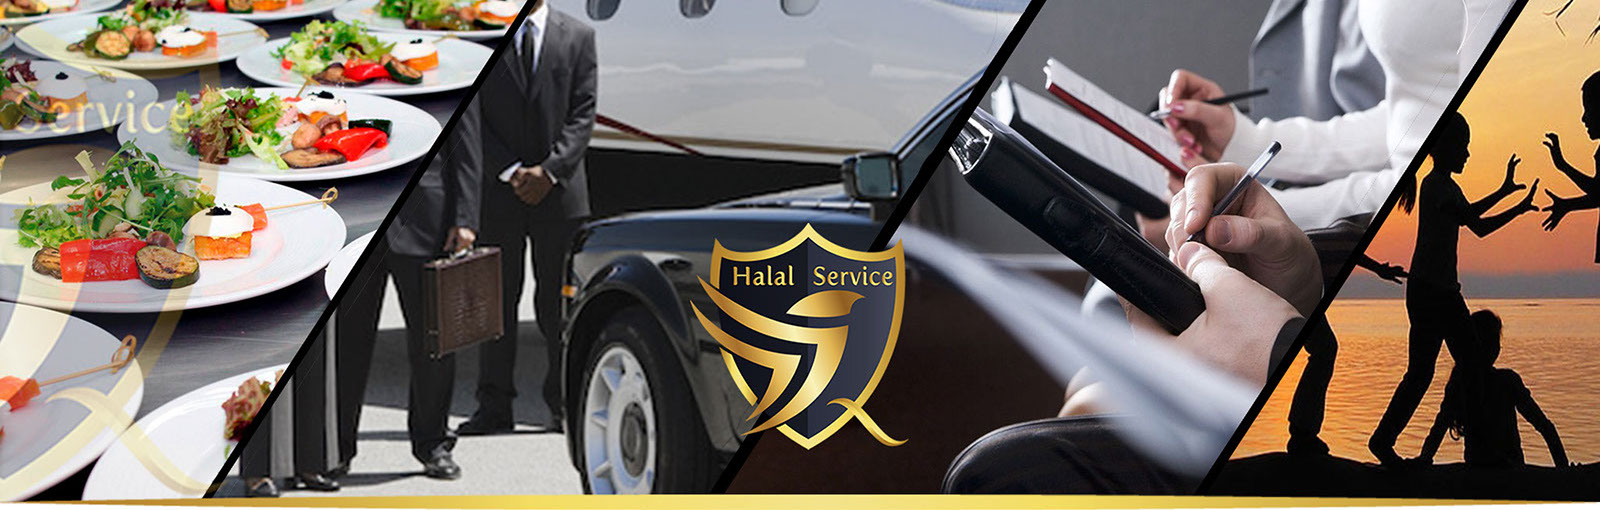 Home. HALAL SERVICE - HS. sicurezza e accompagnamento Halal, baby sitting Halal, catering Halal, room fitting Halal